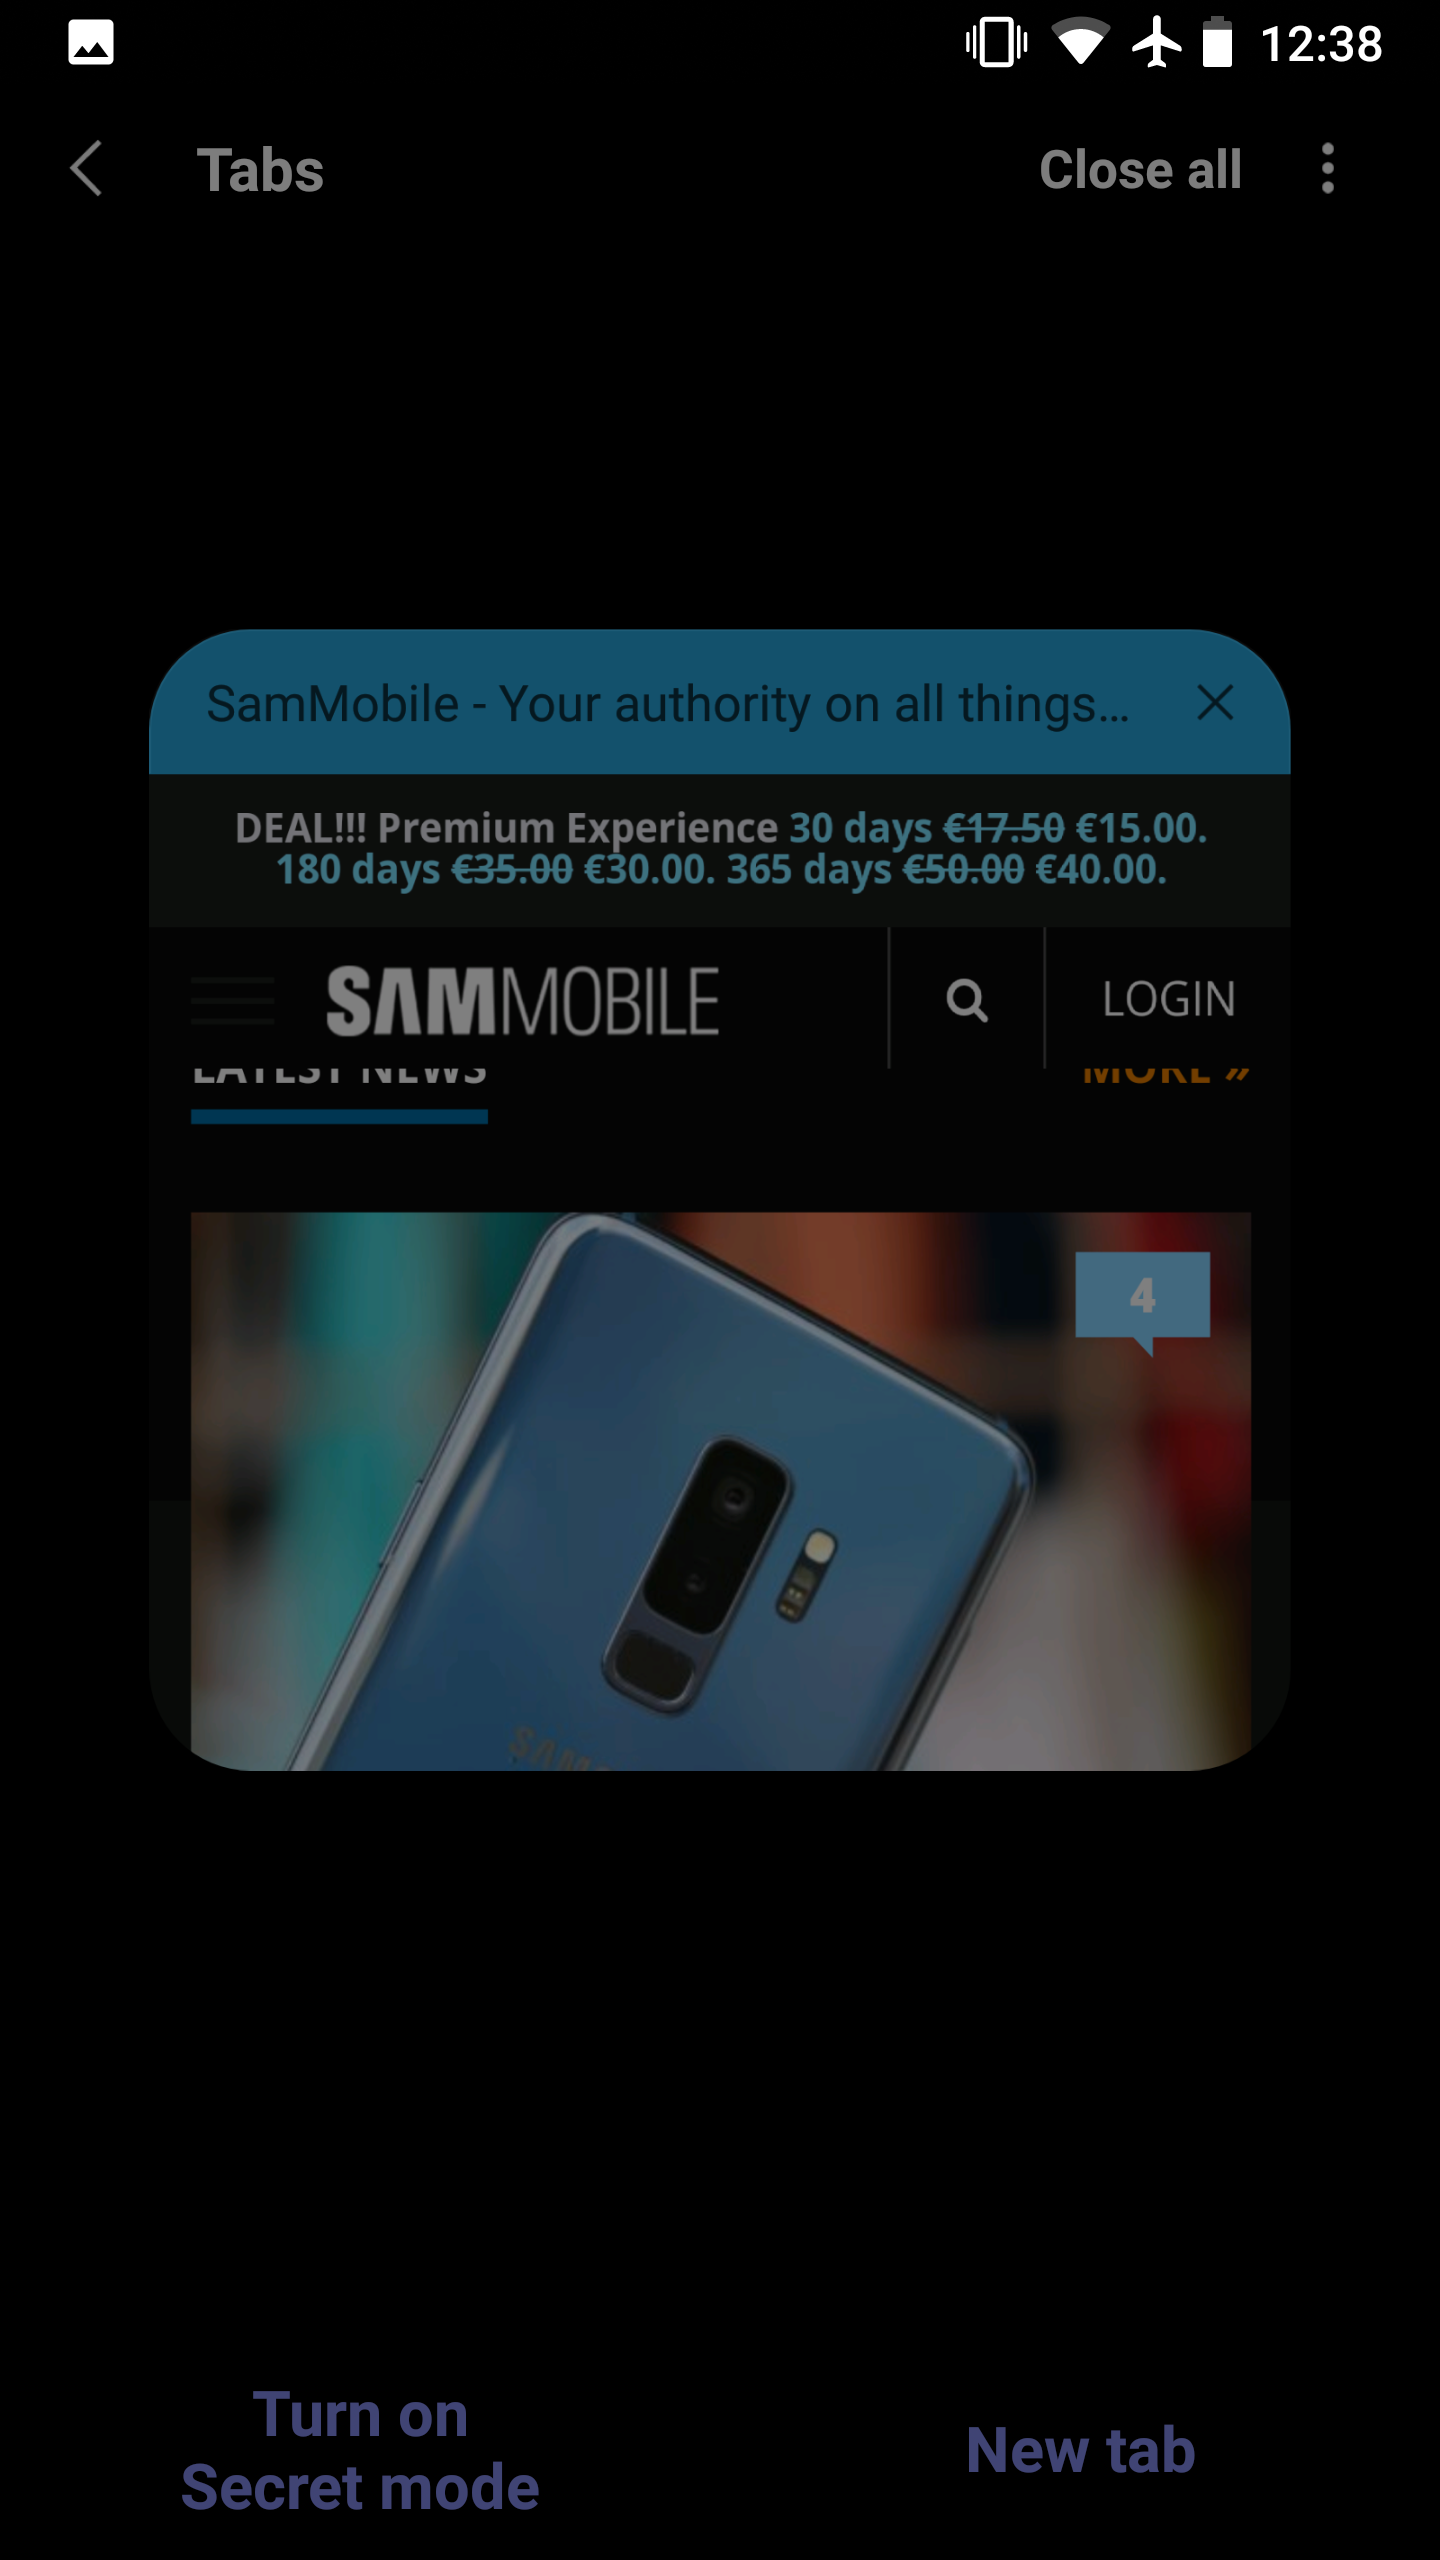 Samsung Internet 9 0 APK leaks with new user interface and